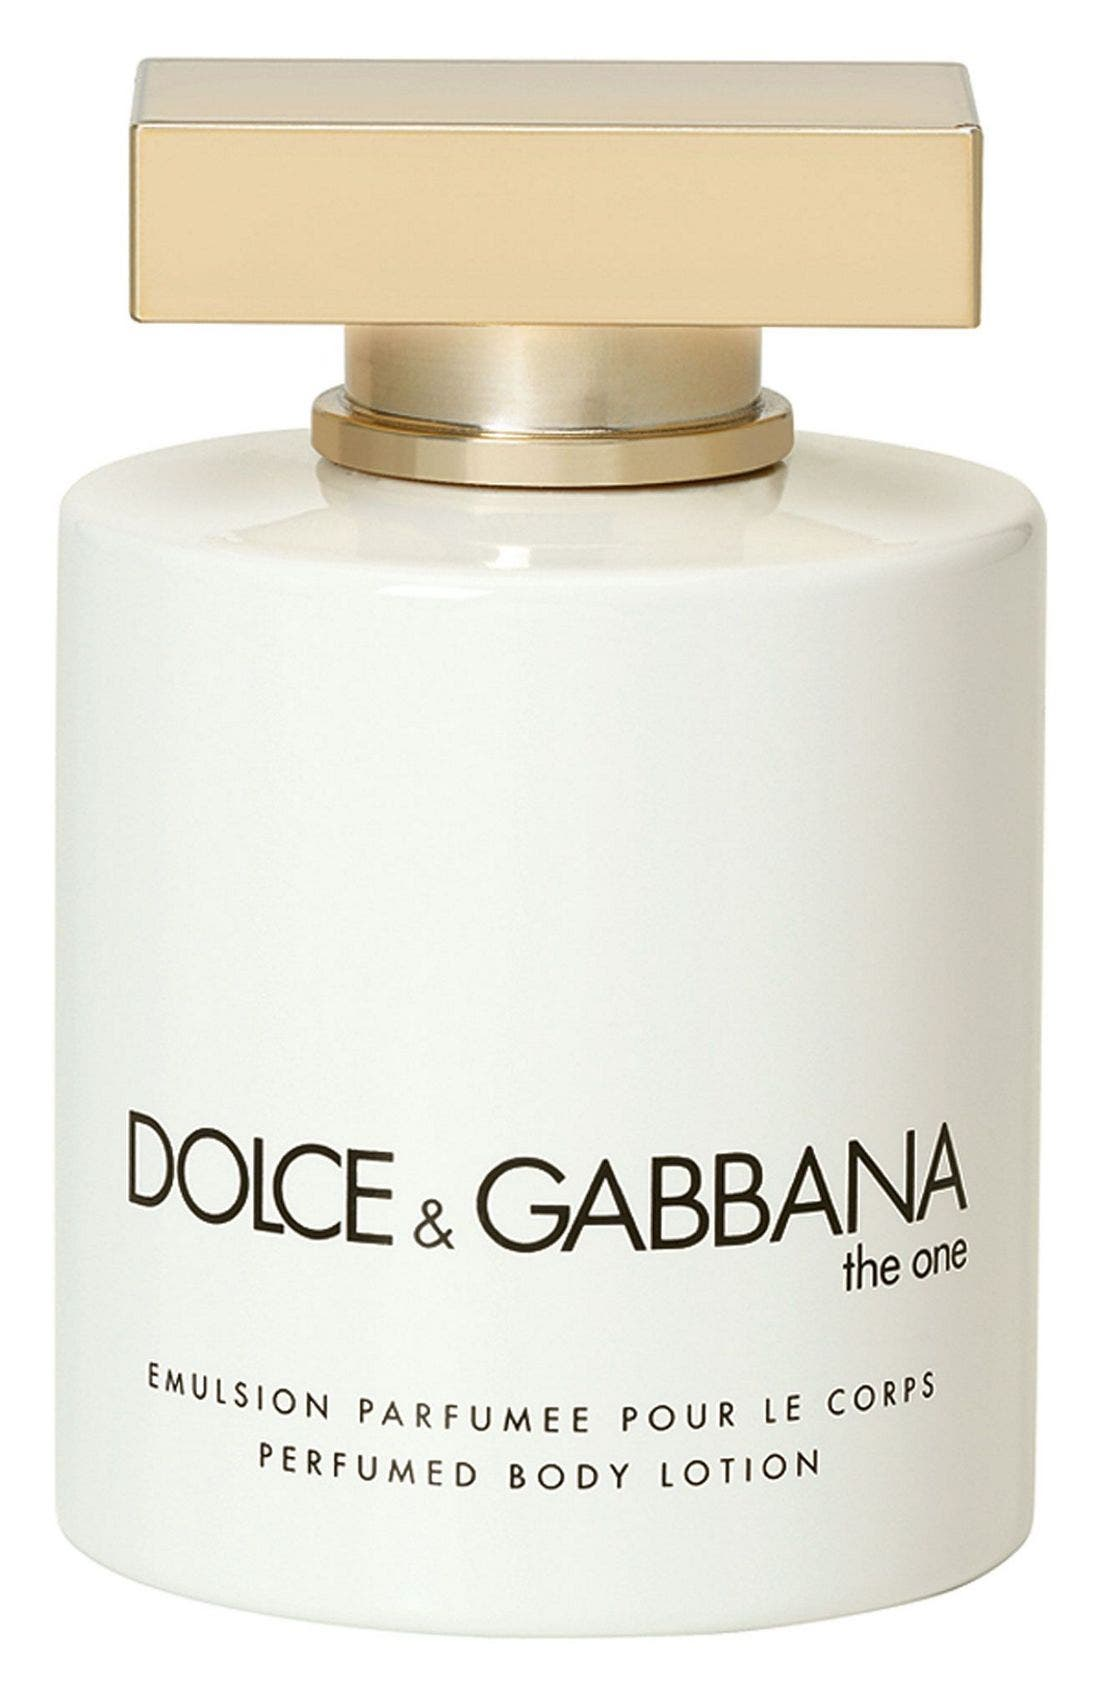 Dolce&Gabbana Beauty 'The One' Body Lotion,                             Main thumbnail 1, color,                             NO COLOR